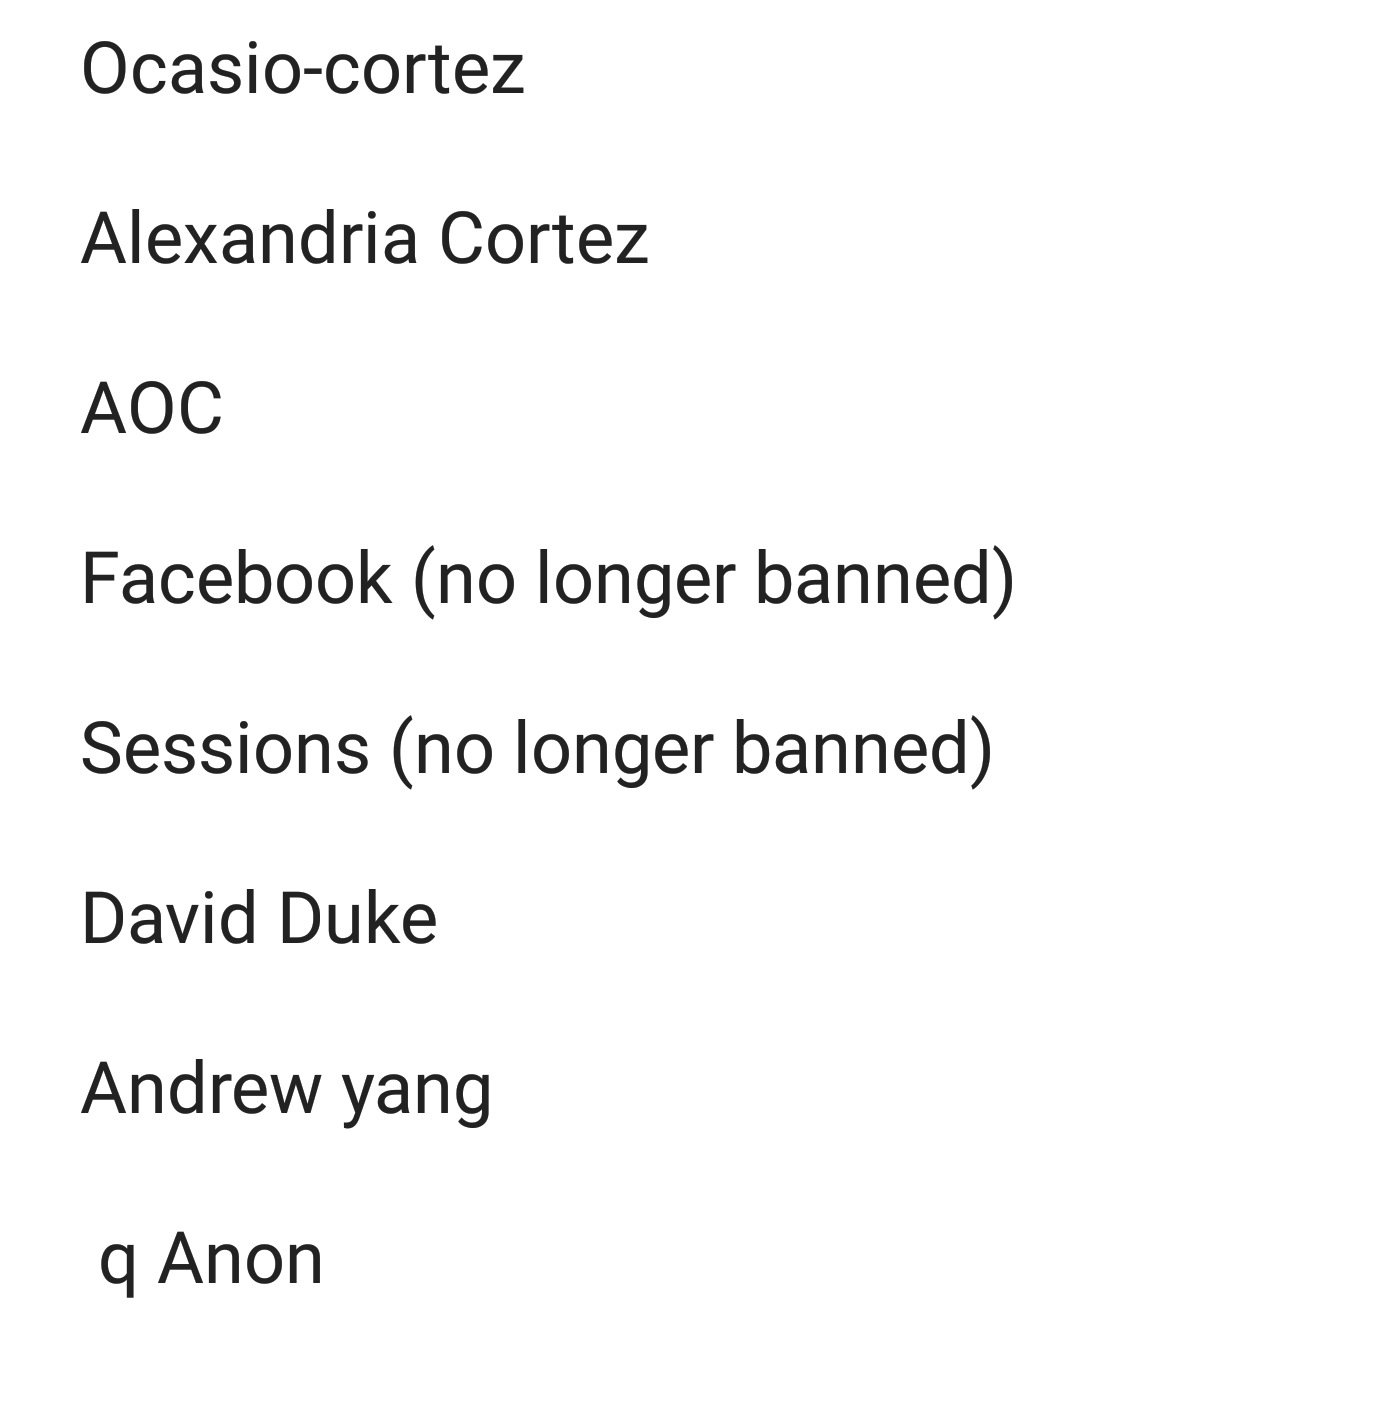 Keywords blacklisted in the_donald (proving that are moderators are controlled opposition)